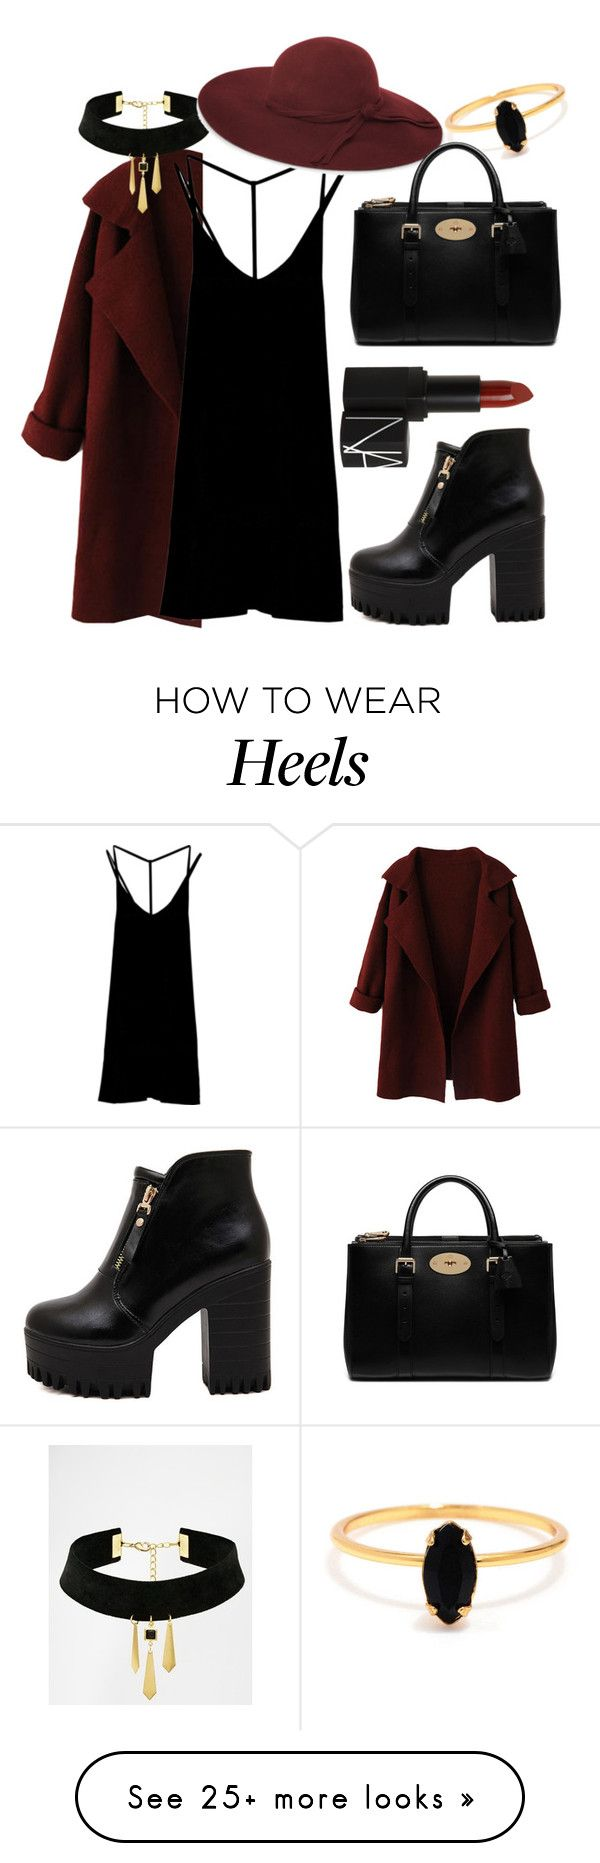 """That same old love."" by boneca-costa on Polyvore featuring moda, WithChic, RVCA, Suzywan DELUXE, French Connection, NARS Cosmetics, Bing Bang, Mulberry, women's clothing y women's fashion"